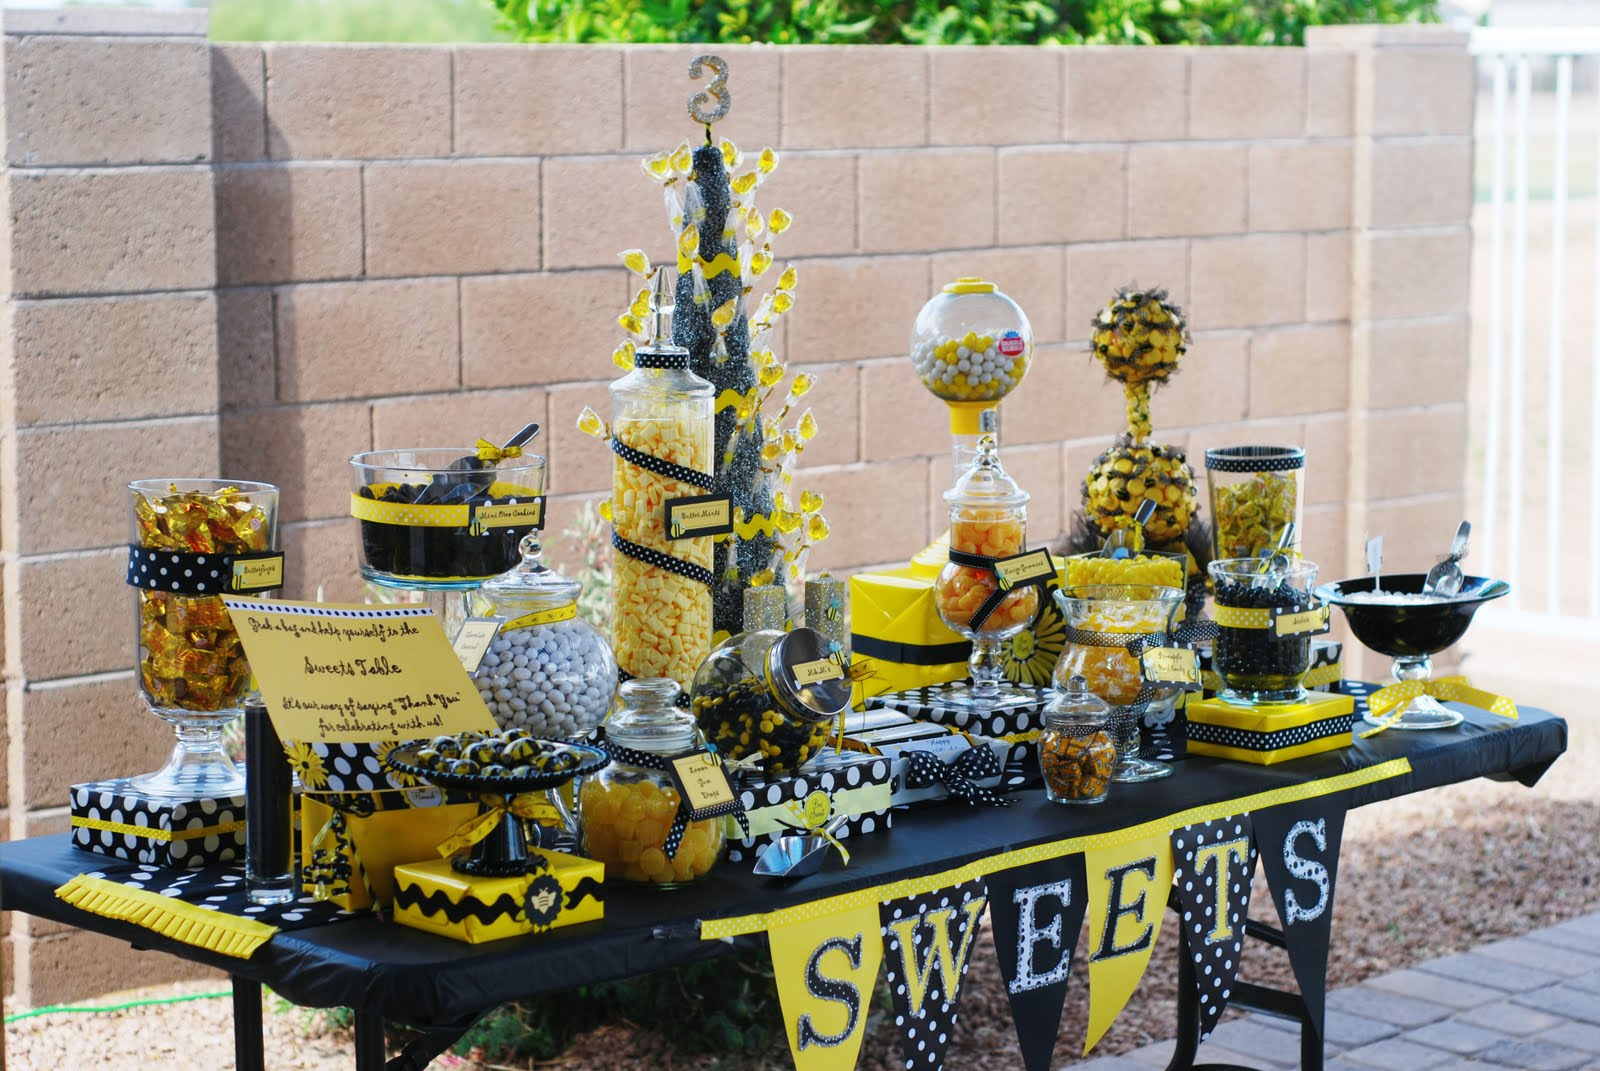 My Crafty Mom Made These Bumble Bee Centerpieces For All The Tables She Has Opened Her Own Etsy Store Now You Can See It HERE